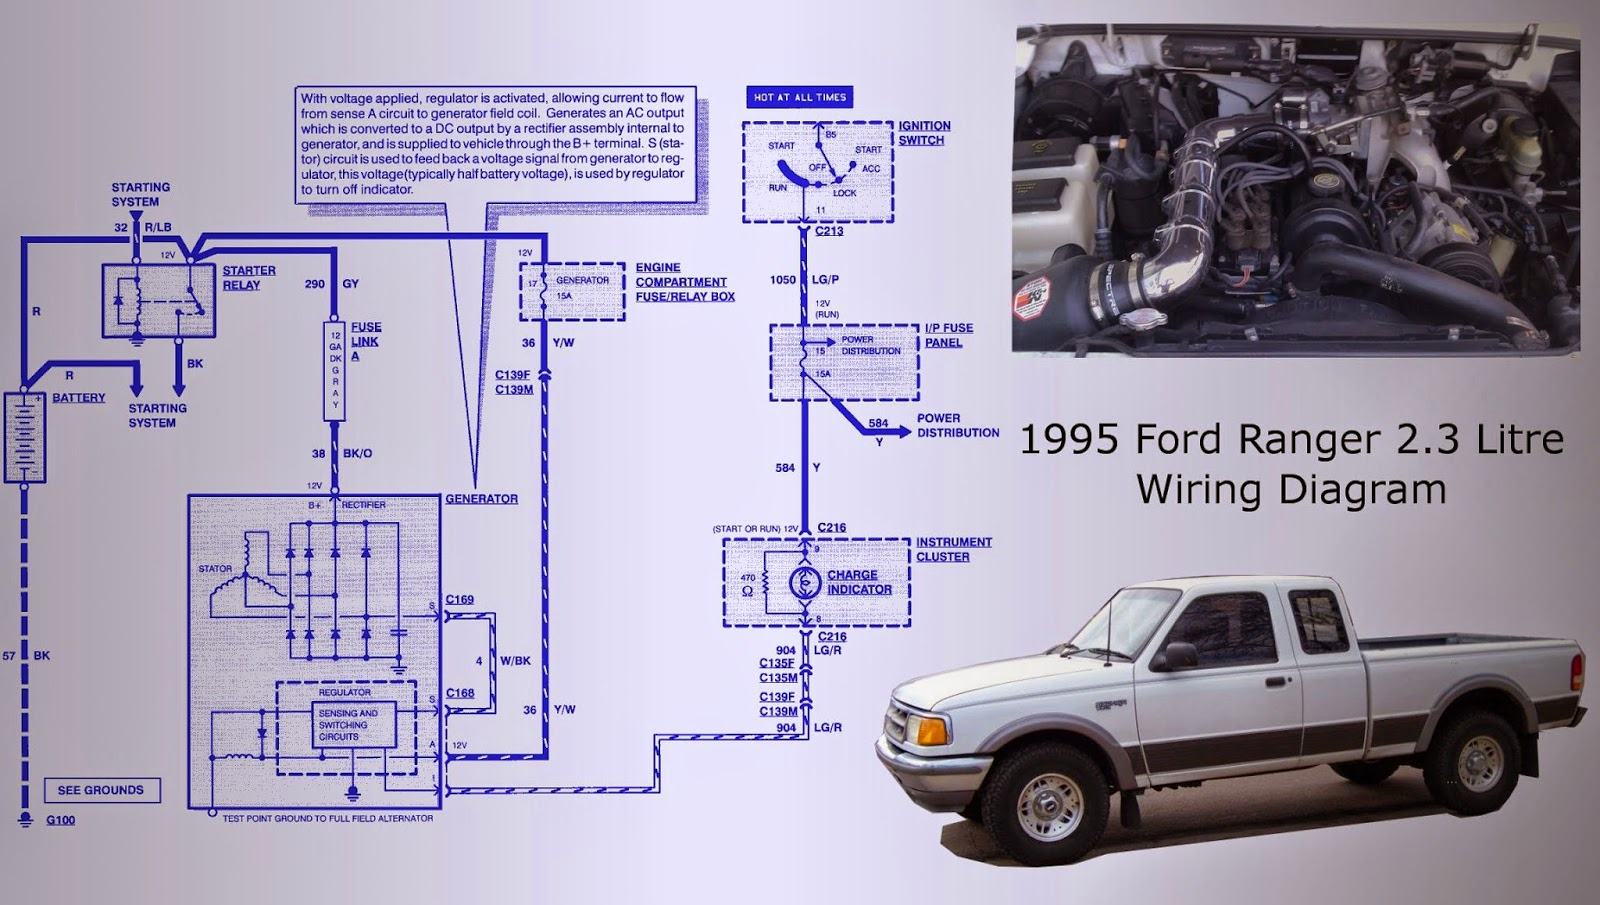 Mercy 190e 1988 Rear Defogger Fuse Boxblock Circuit Breaker Diagram additionally Mustang Diagrams A besides 87 E350 Fuel Tank Pump furthermore Prestolite 8rg2112 Alternator Wiring Diagram in addition Renault Megane Ii Wiring Diagrams. on ford wiring diagrams